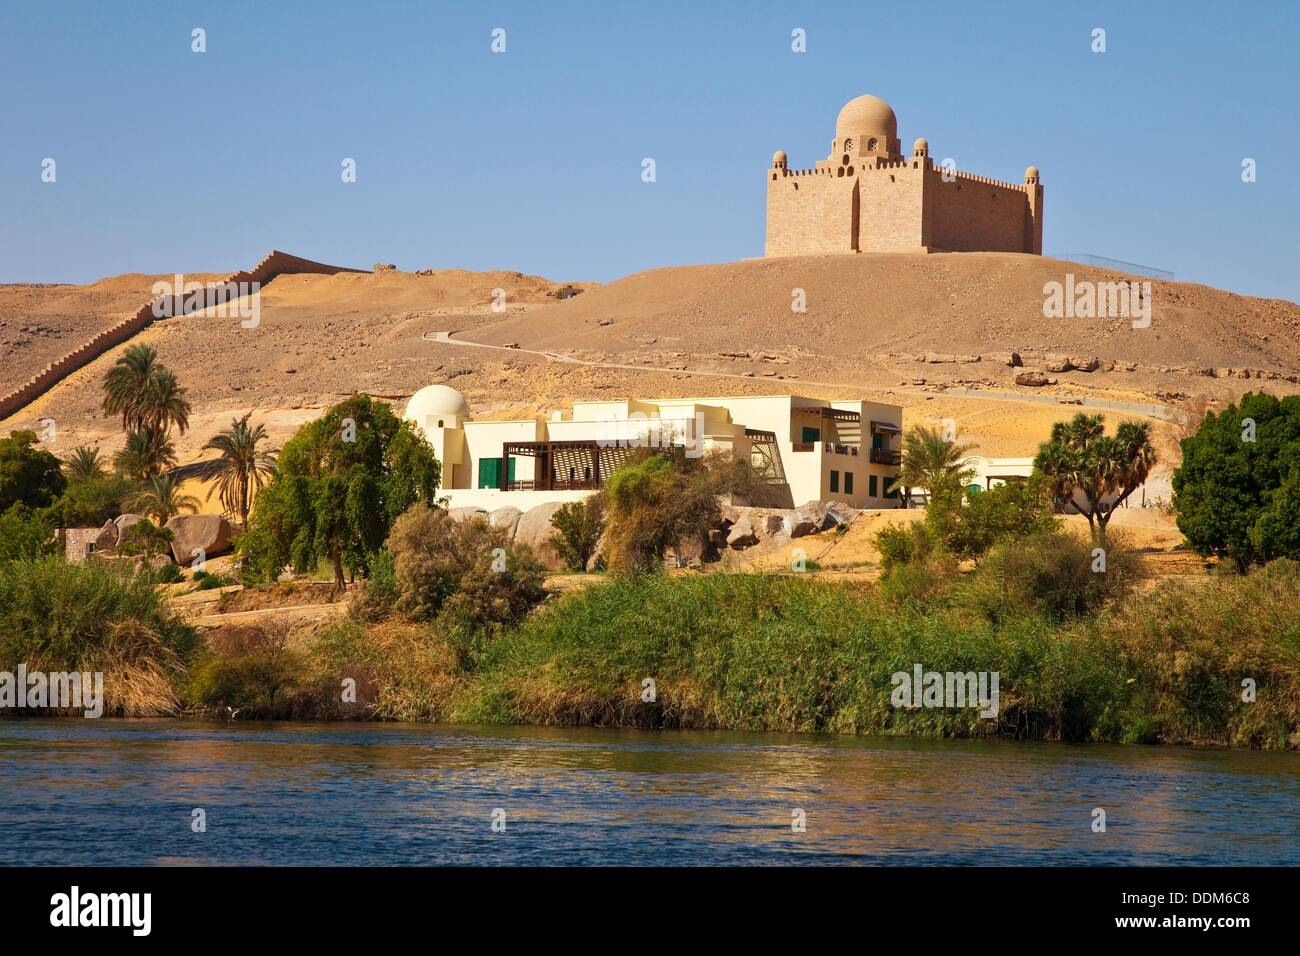 Mausoleum Of Agha Khan Aswan Nile Valley Egypt Stock Photo Alamy